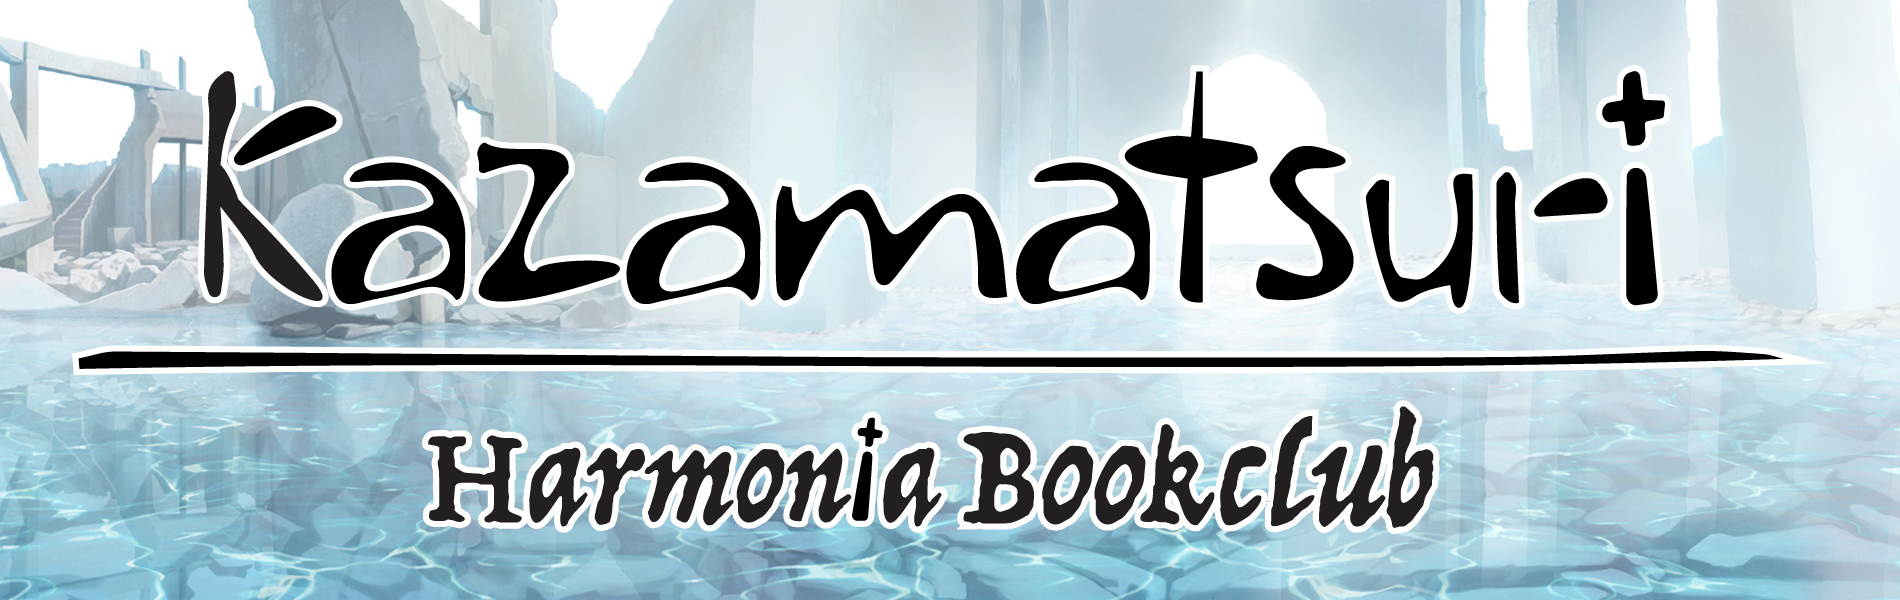 Announcing the Harmonia Bookclub! Join the discussion, create art, win prizes!